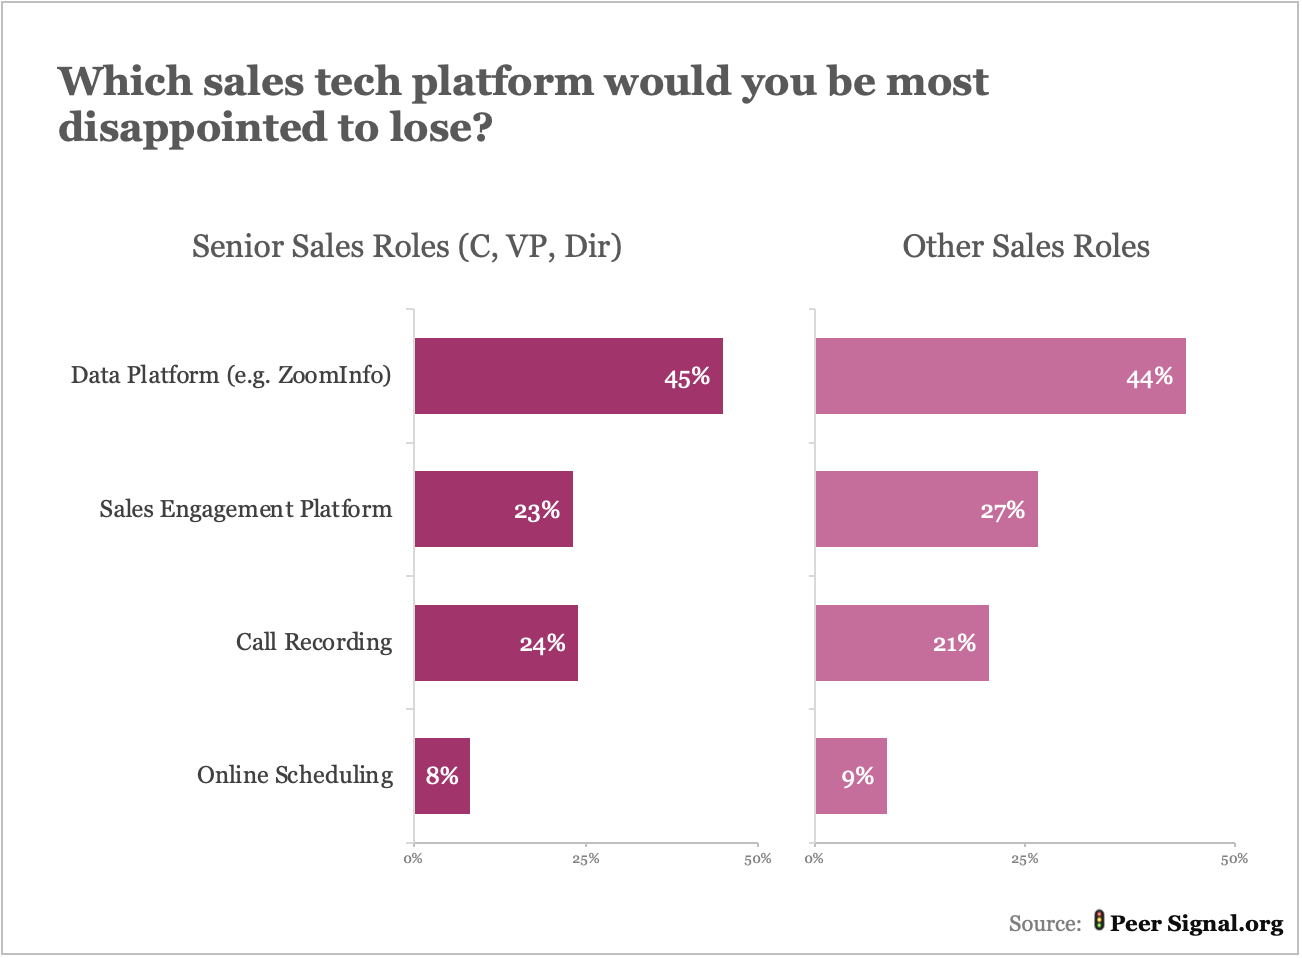 Chart: Which sales tech platform would you be most disappointed to lose? 1st: Data platform. 2nd: Sales engagement platform. 3rd: Call recording. 4th: Online scheduling.